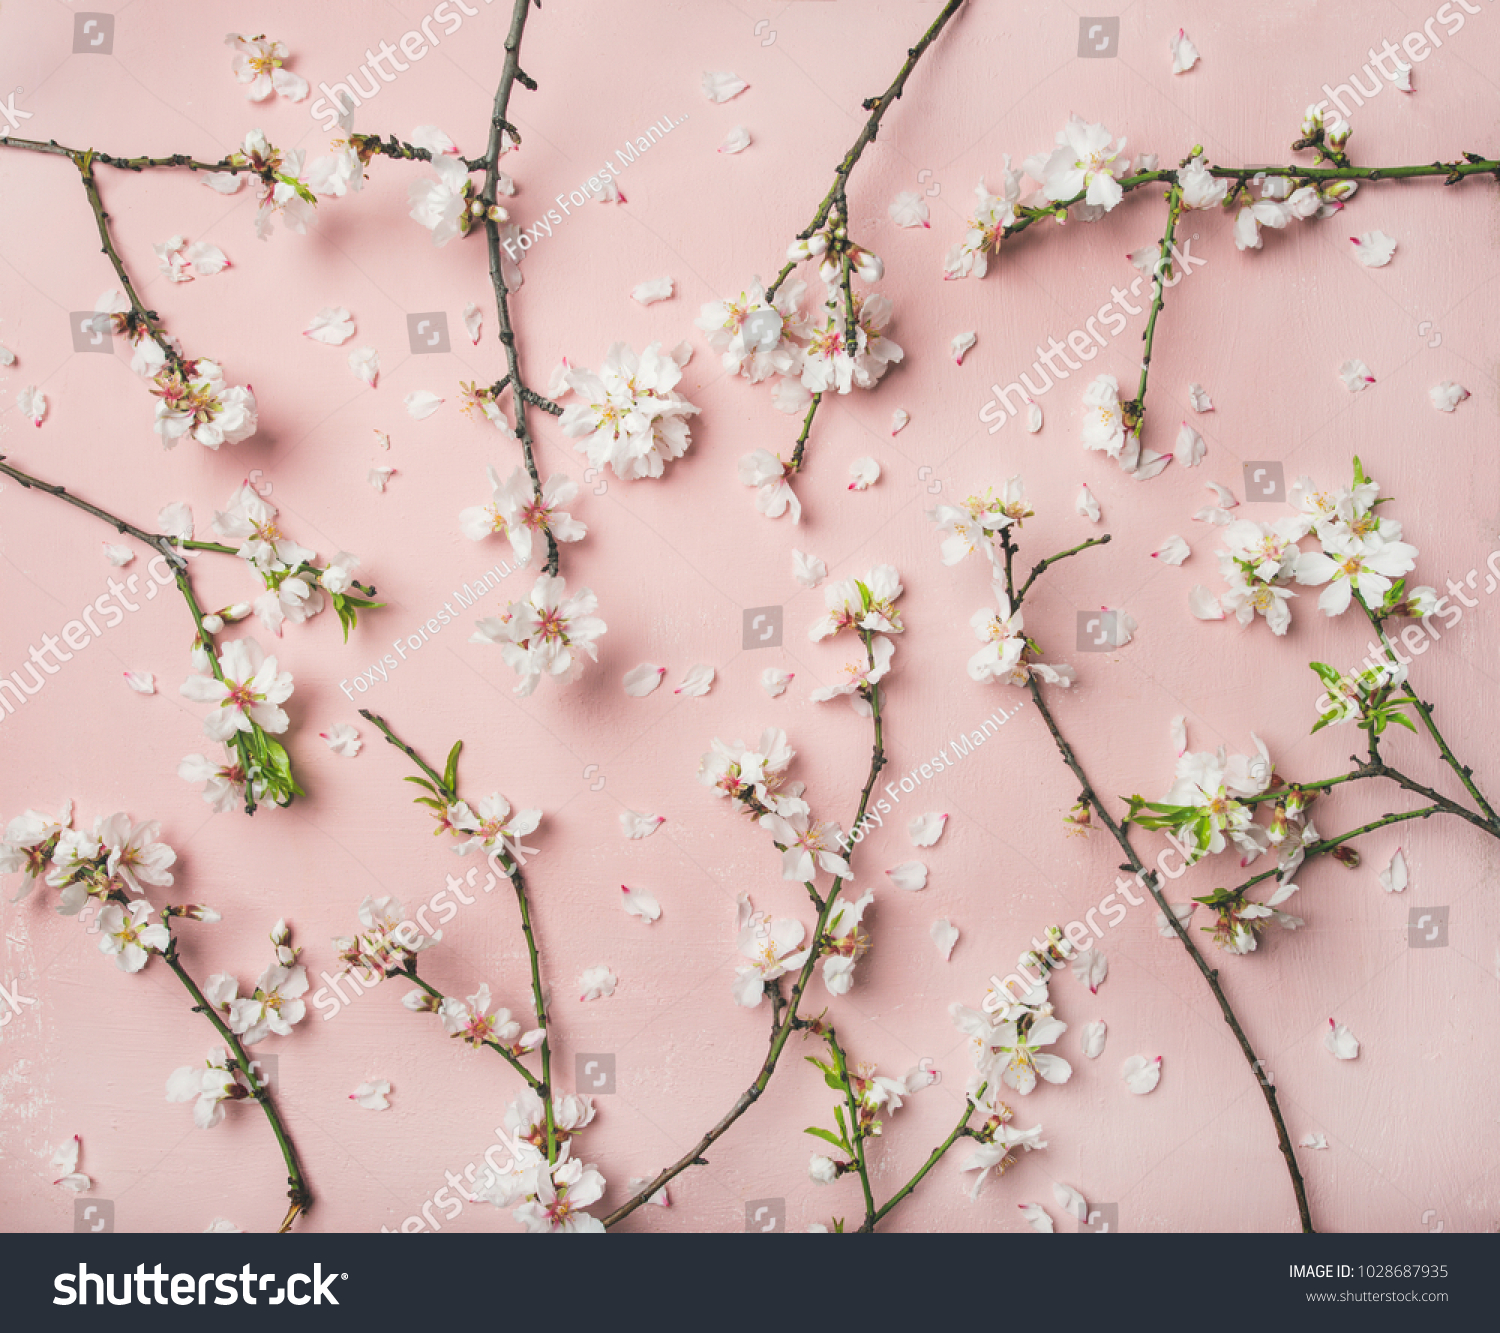 Spring Floral Background Texture Wallpaper Flatlay Stock Photo